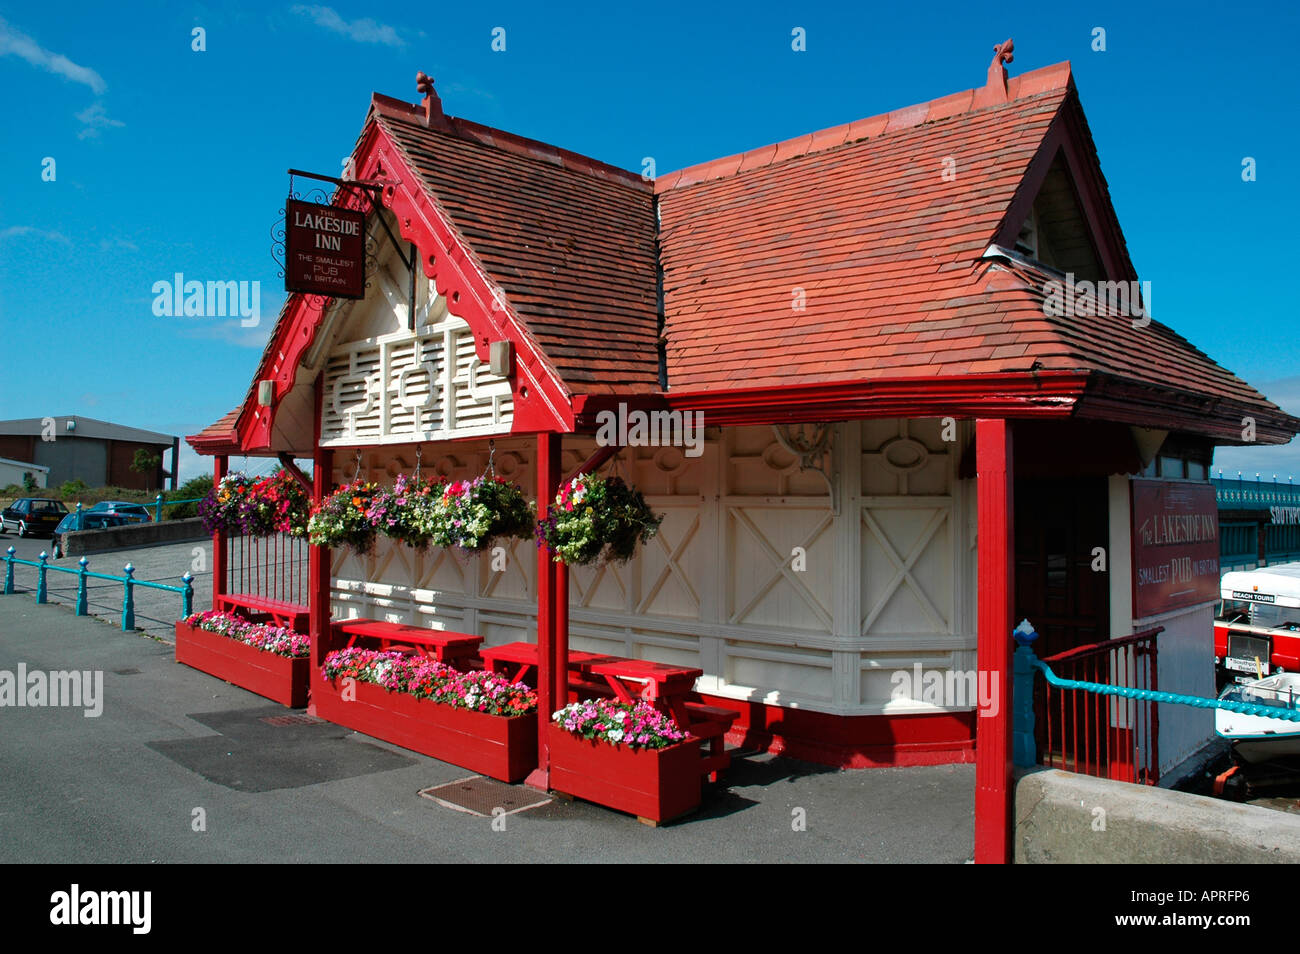 the lakeside inn at southport is the smallest pub in england - Stock Image